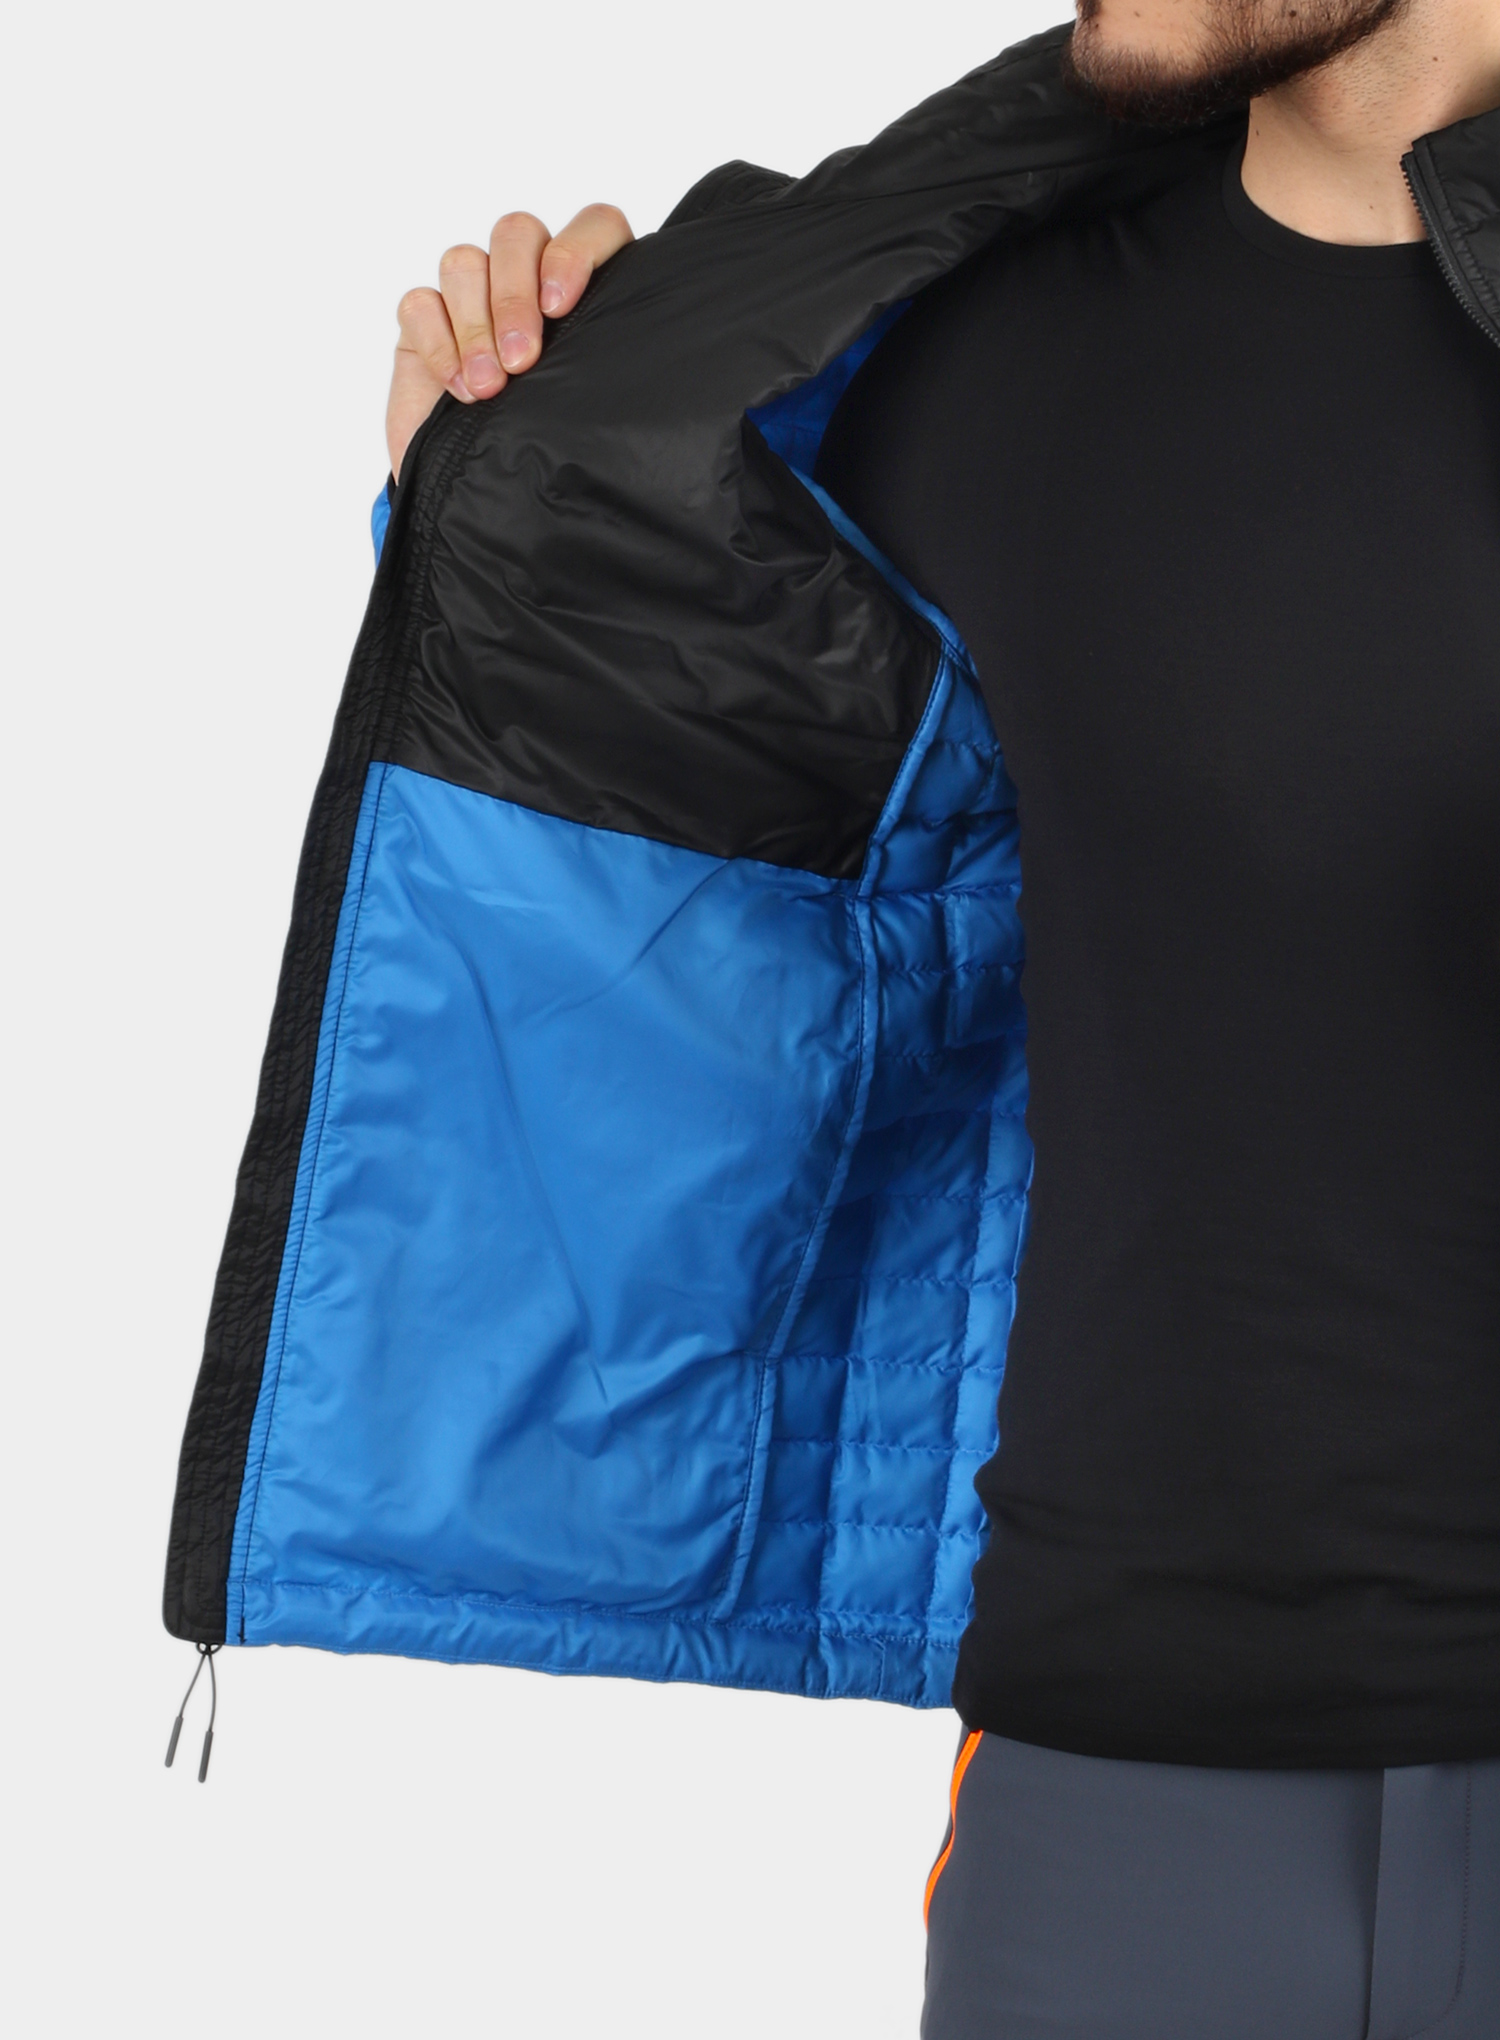 Kurtka The North Face ThermoBall Eco Active Jacket - l.blue/blk - zdjęcie nr. 7